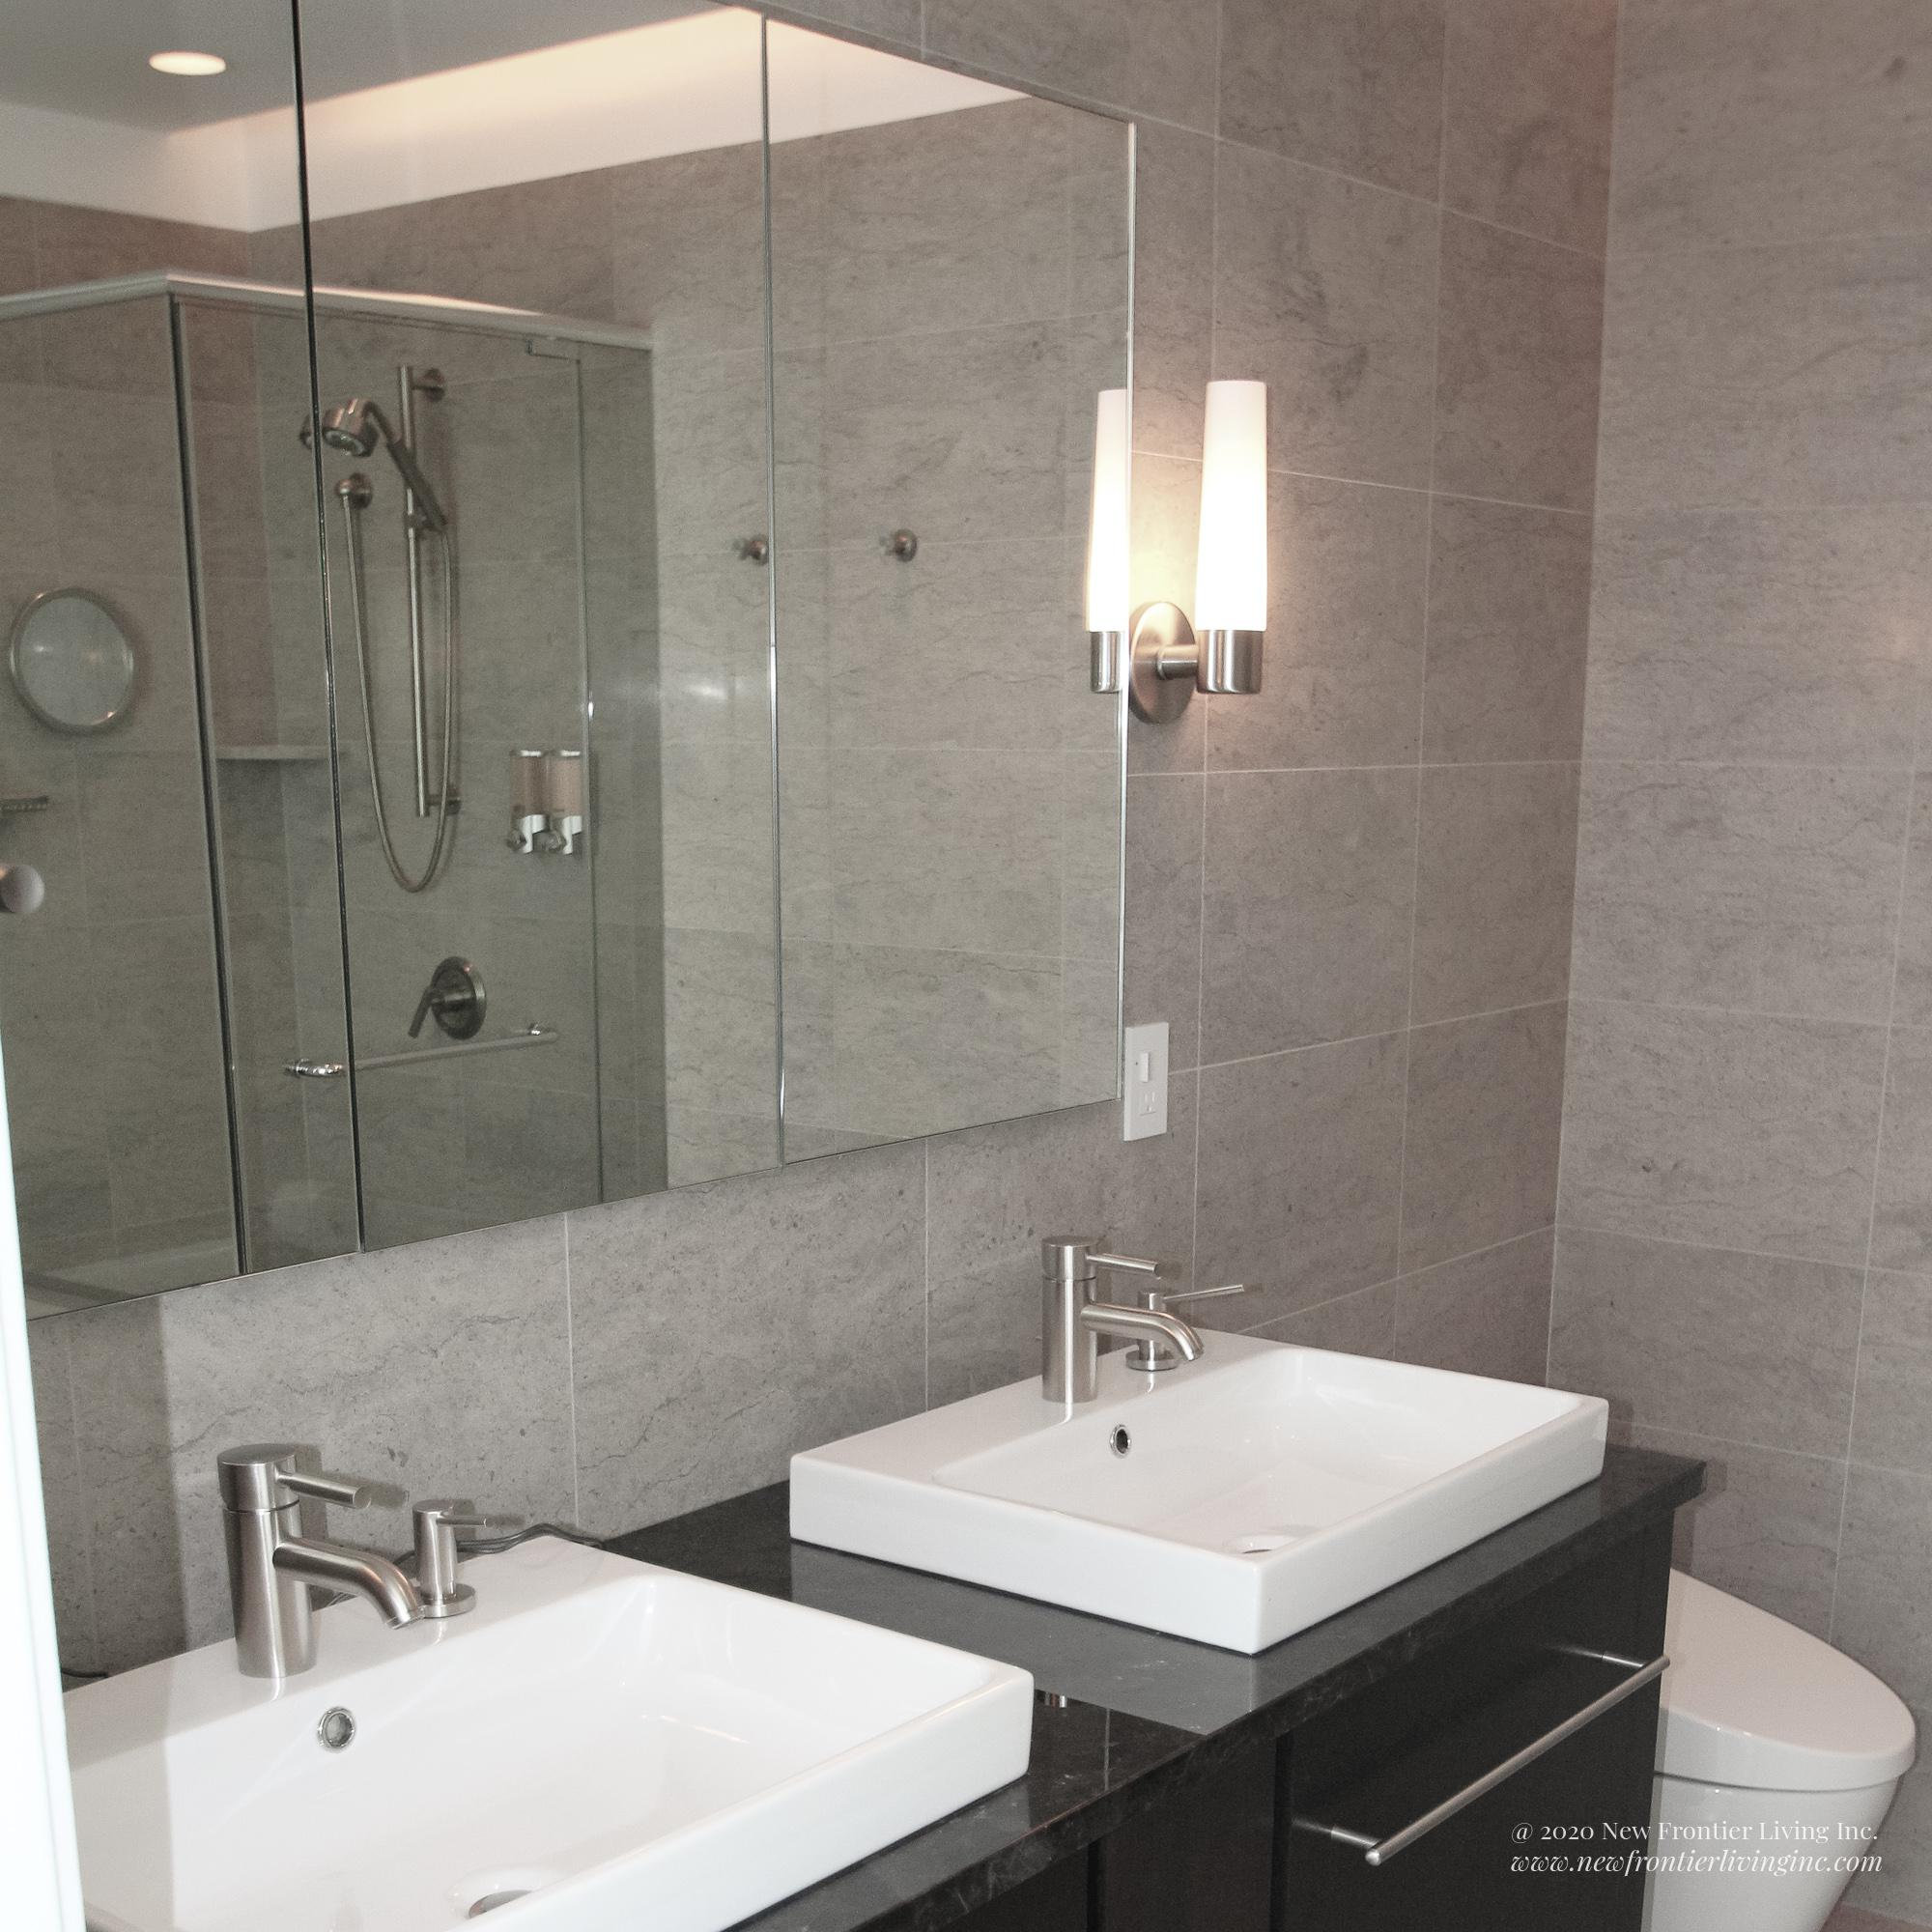 Cream brown bathroom installed by NFL Inc. two sinks and vanities and mirror